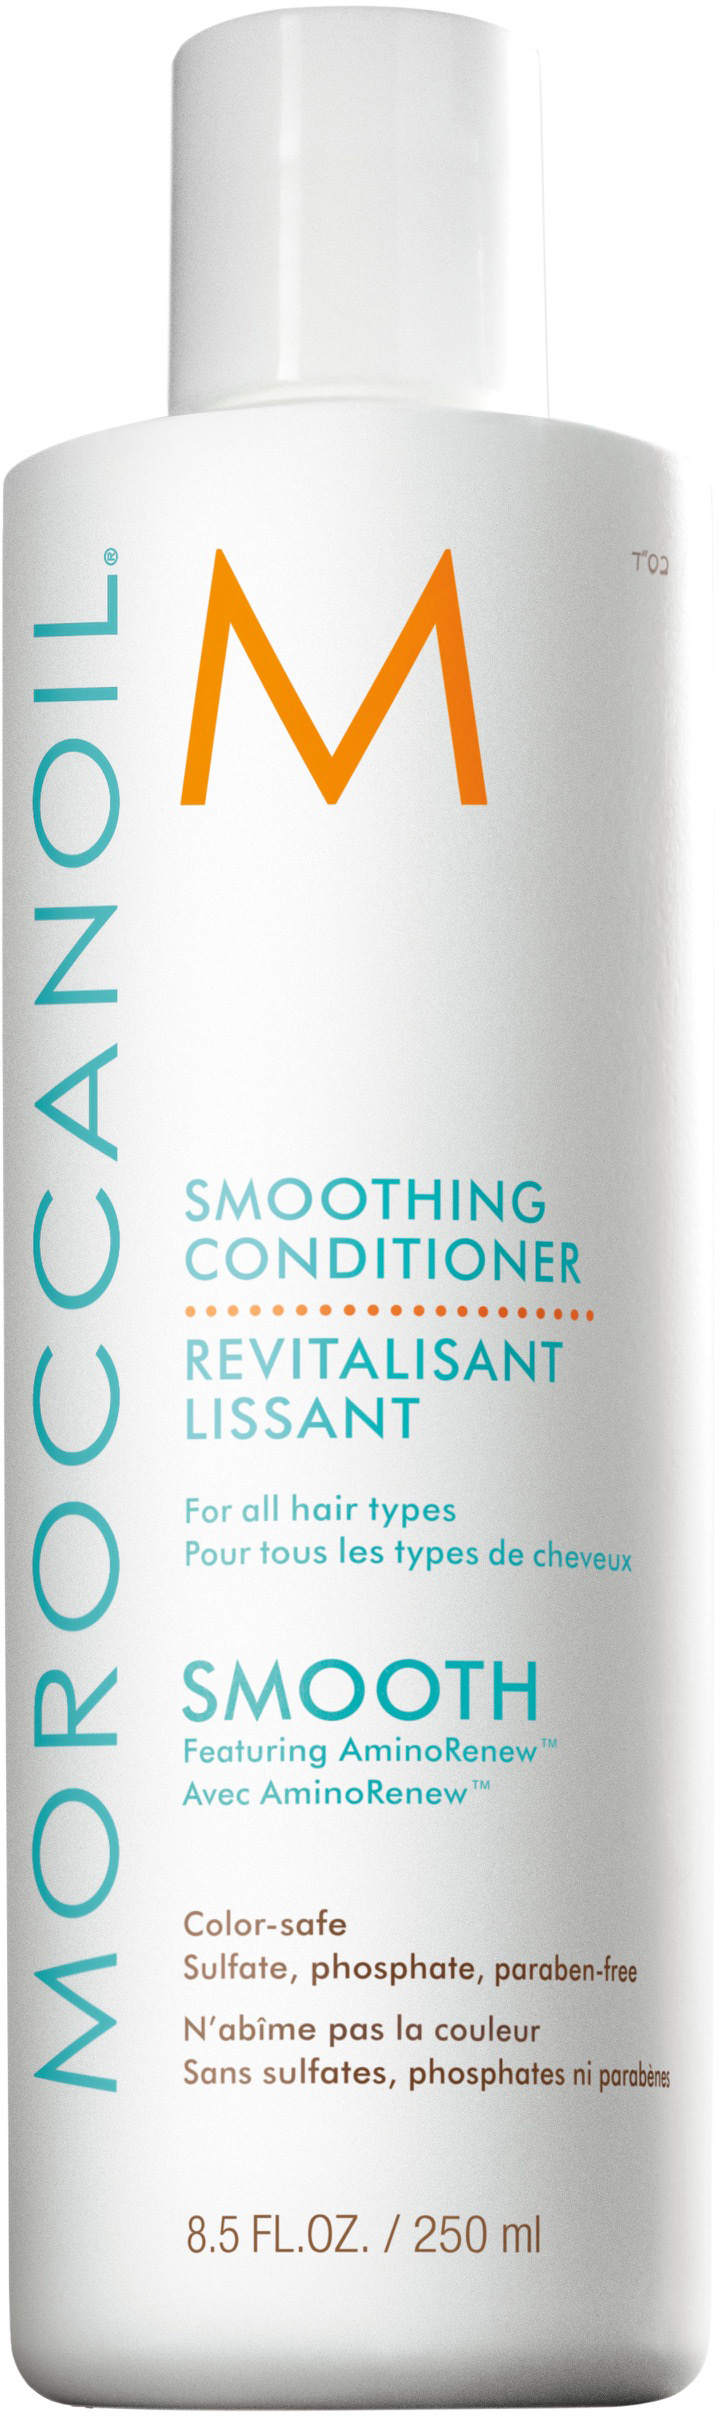 Moroccanoil Smoothing Conditioner 500ml - utan parabener.